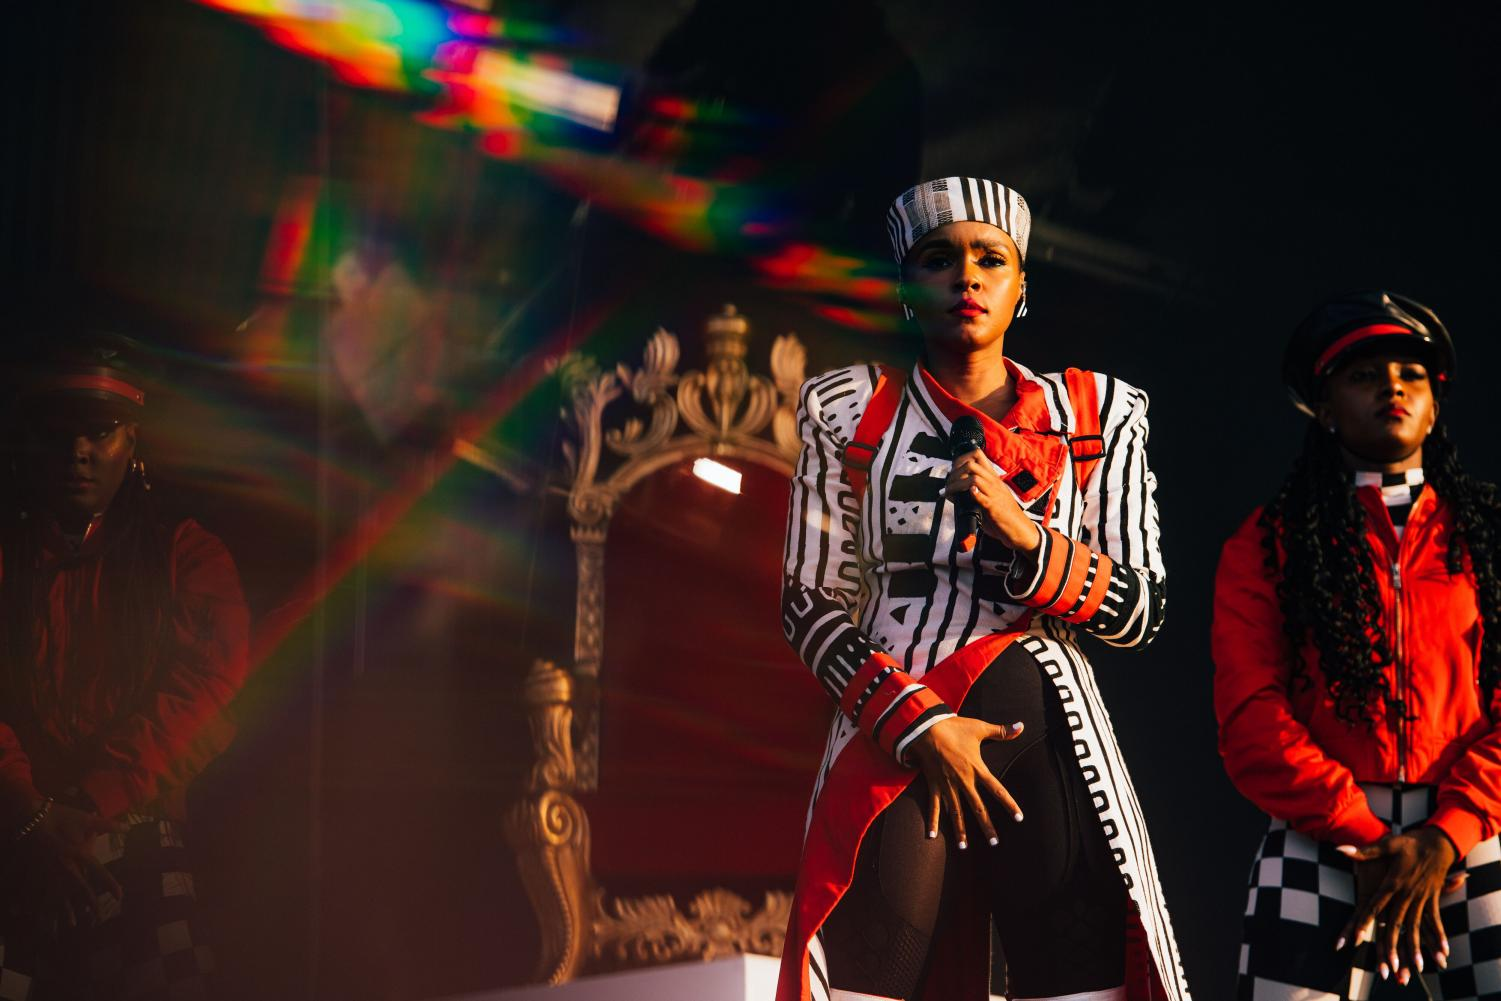 Janelle Monáe performs at Lollapalooza on Friday. Her set was complete with a throne, powerful choreography, and several outfit changes.